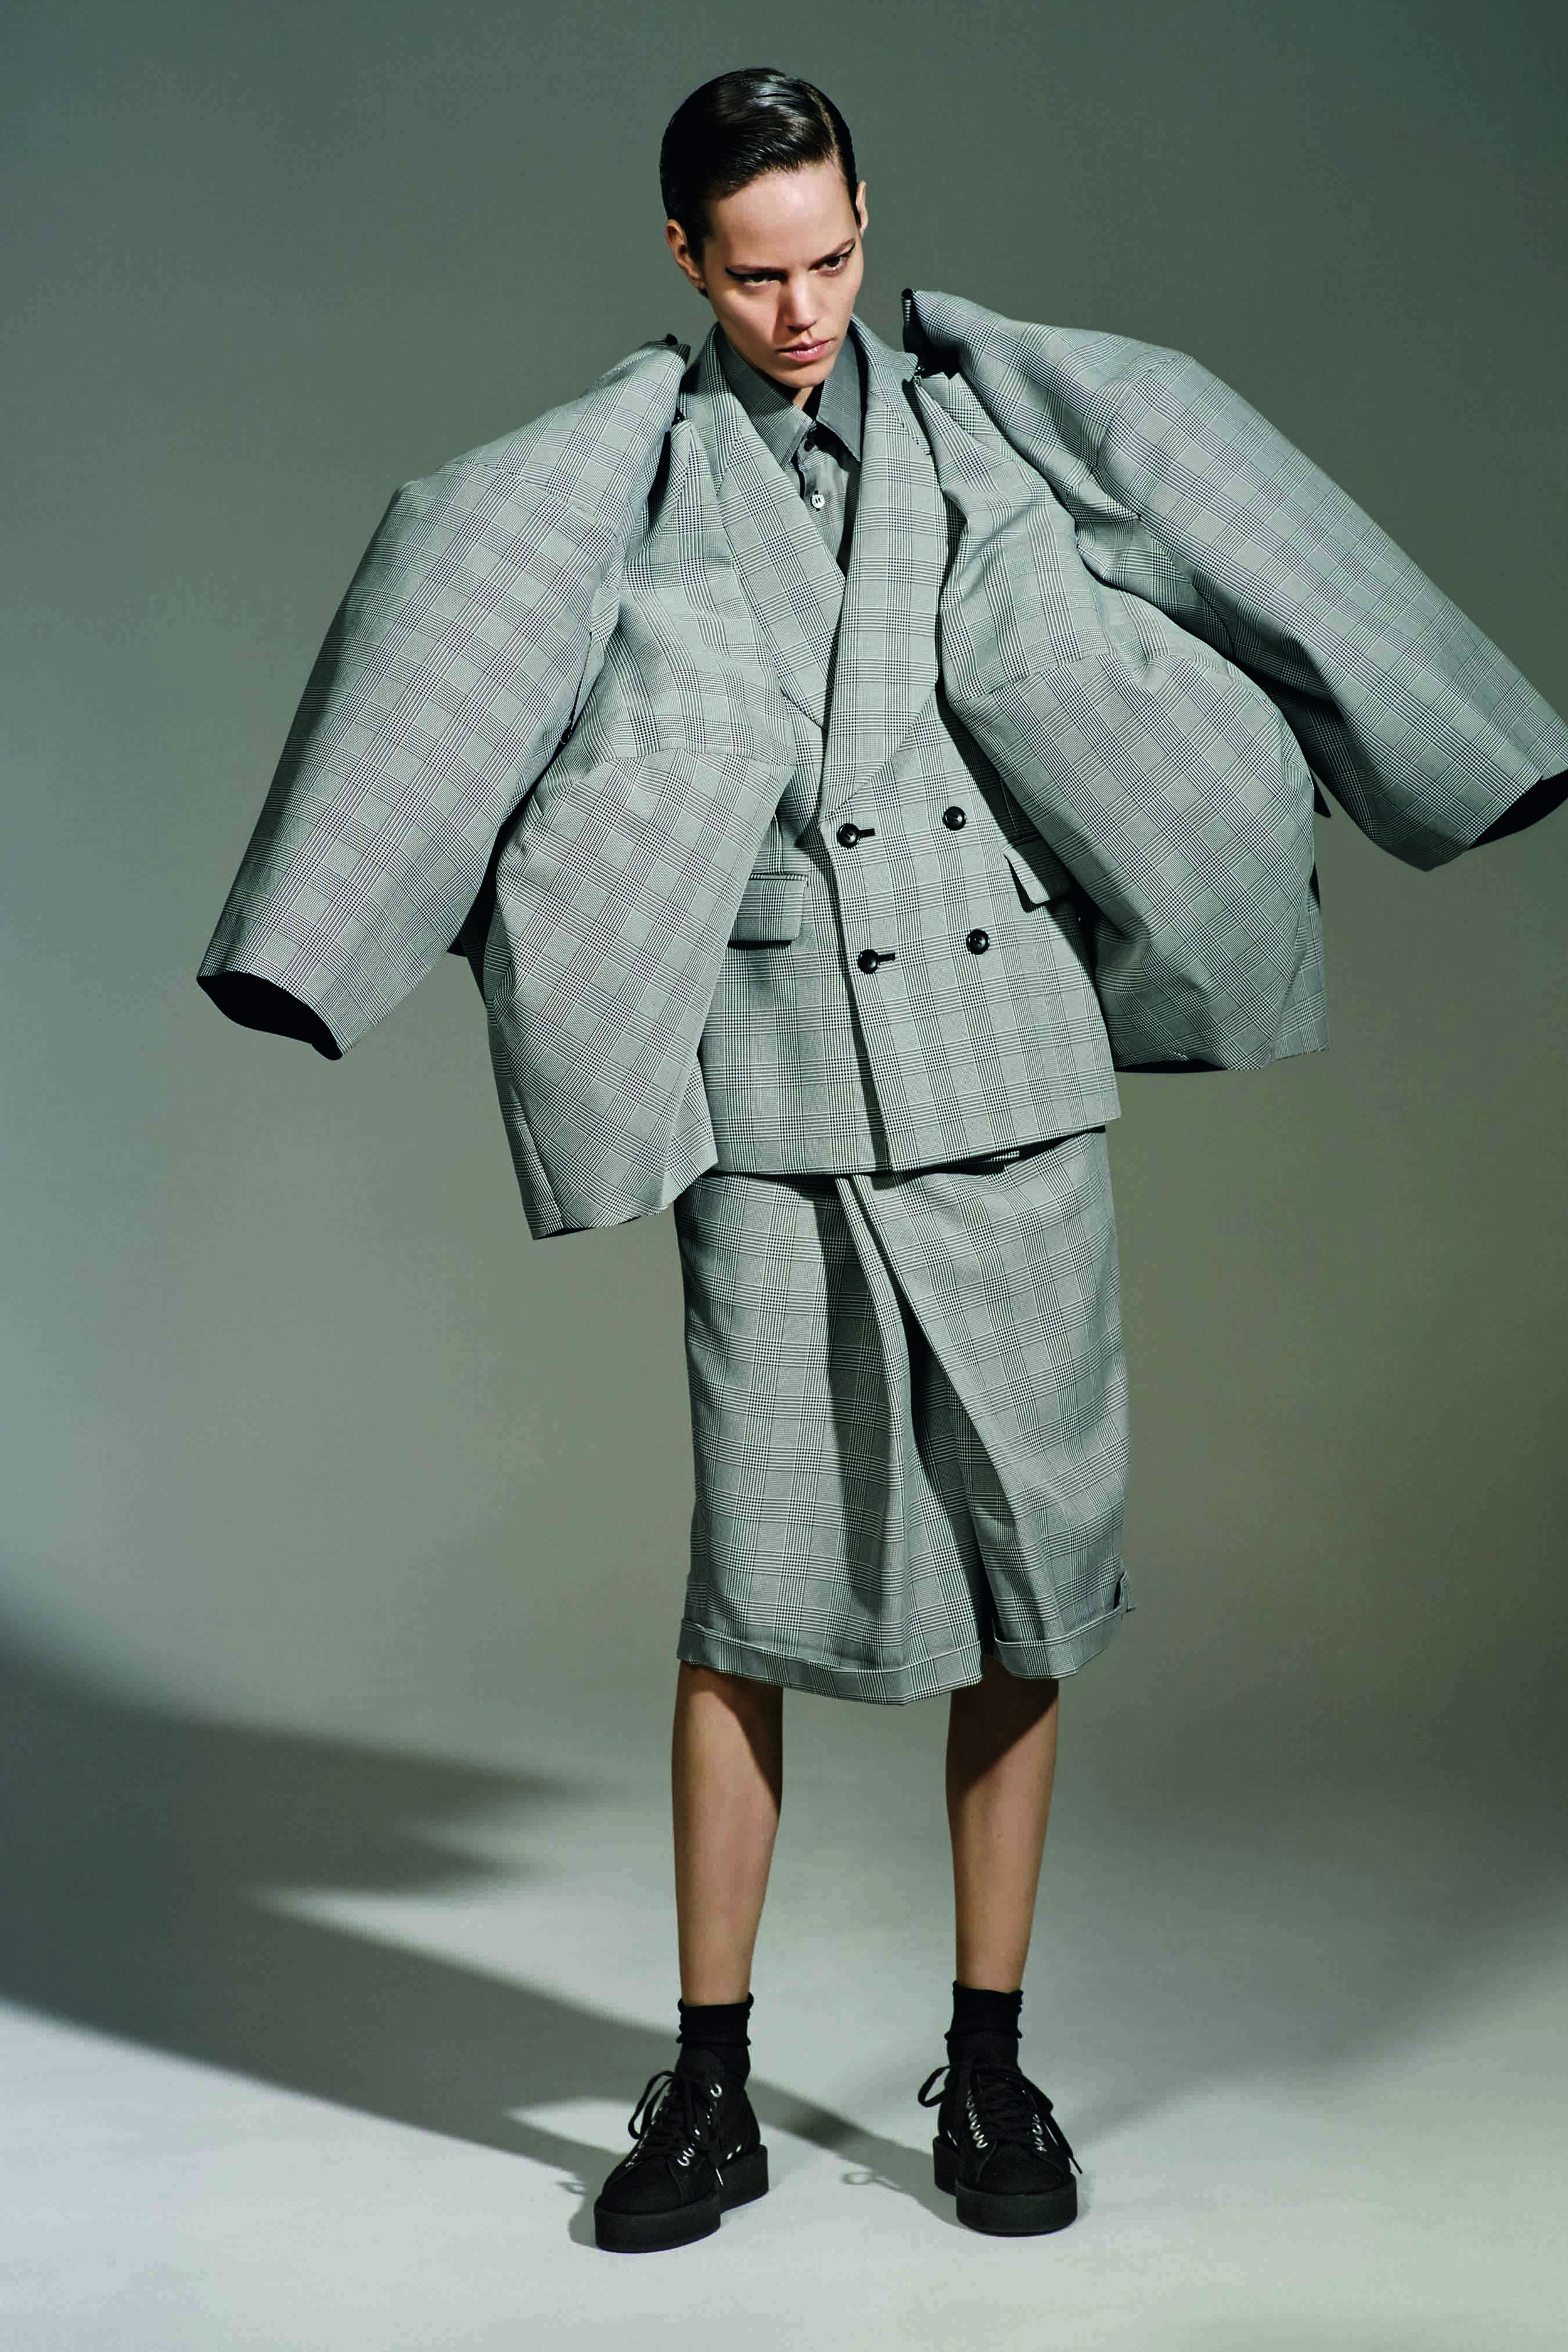 Cara Taylor Freja Beha by Collier Schorr for The Met Costume Institute / Rei Kawakubo Exhibition